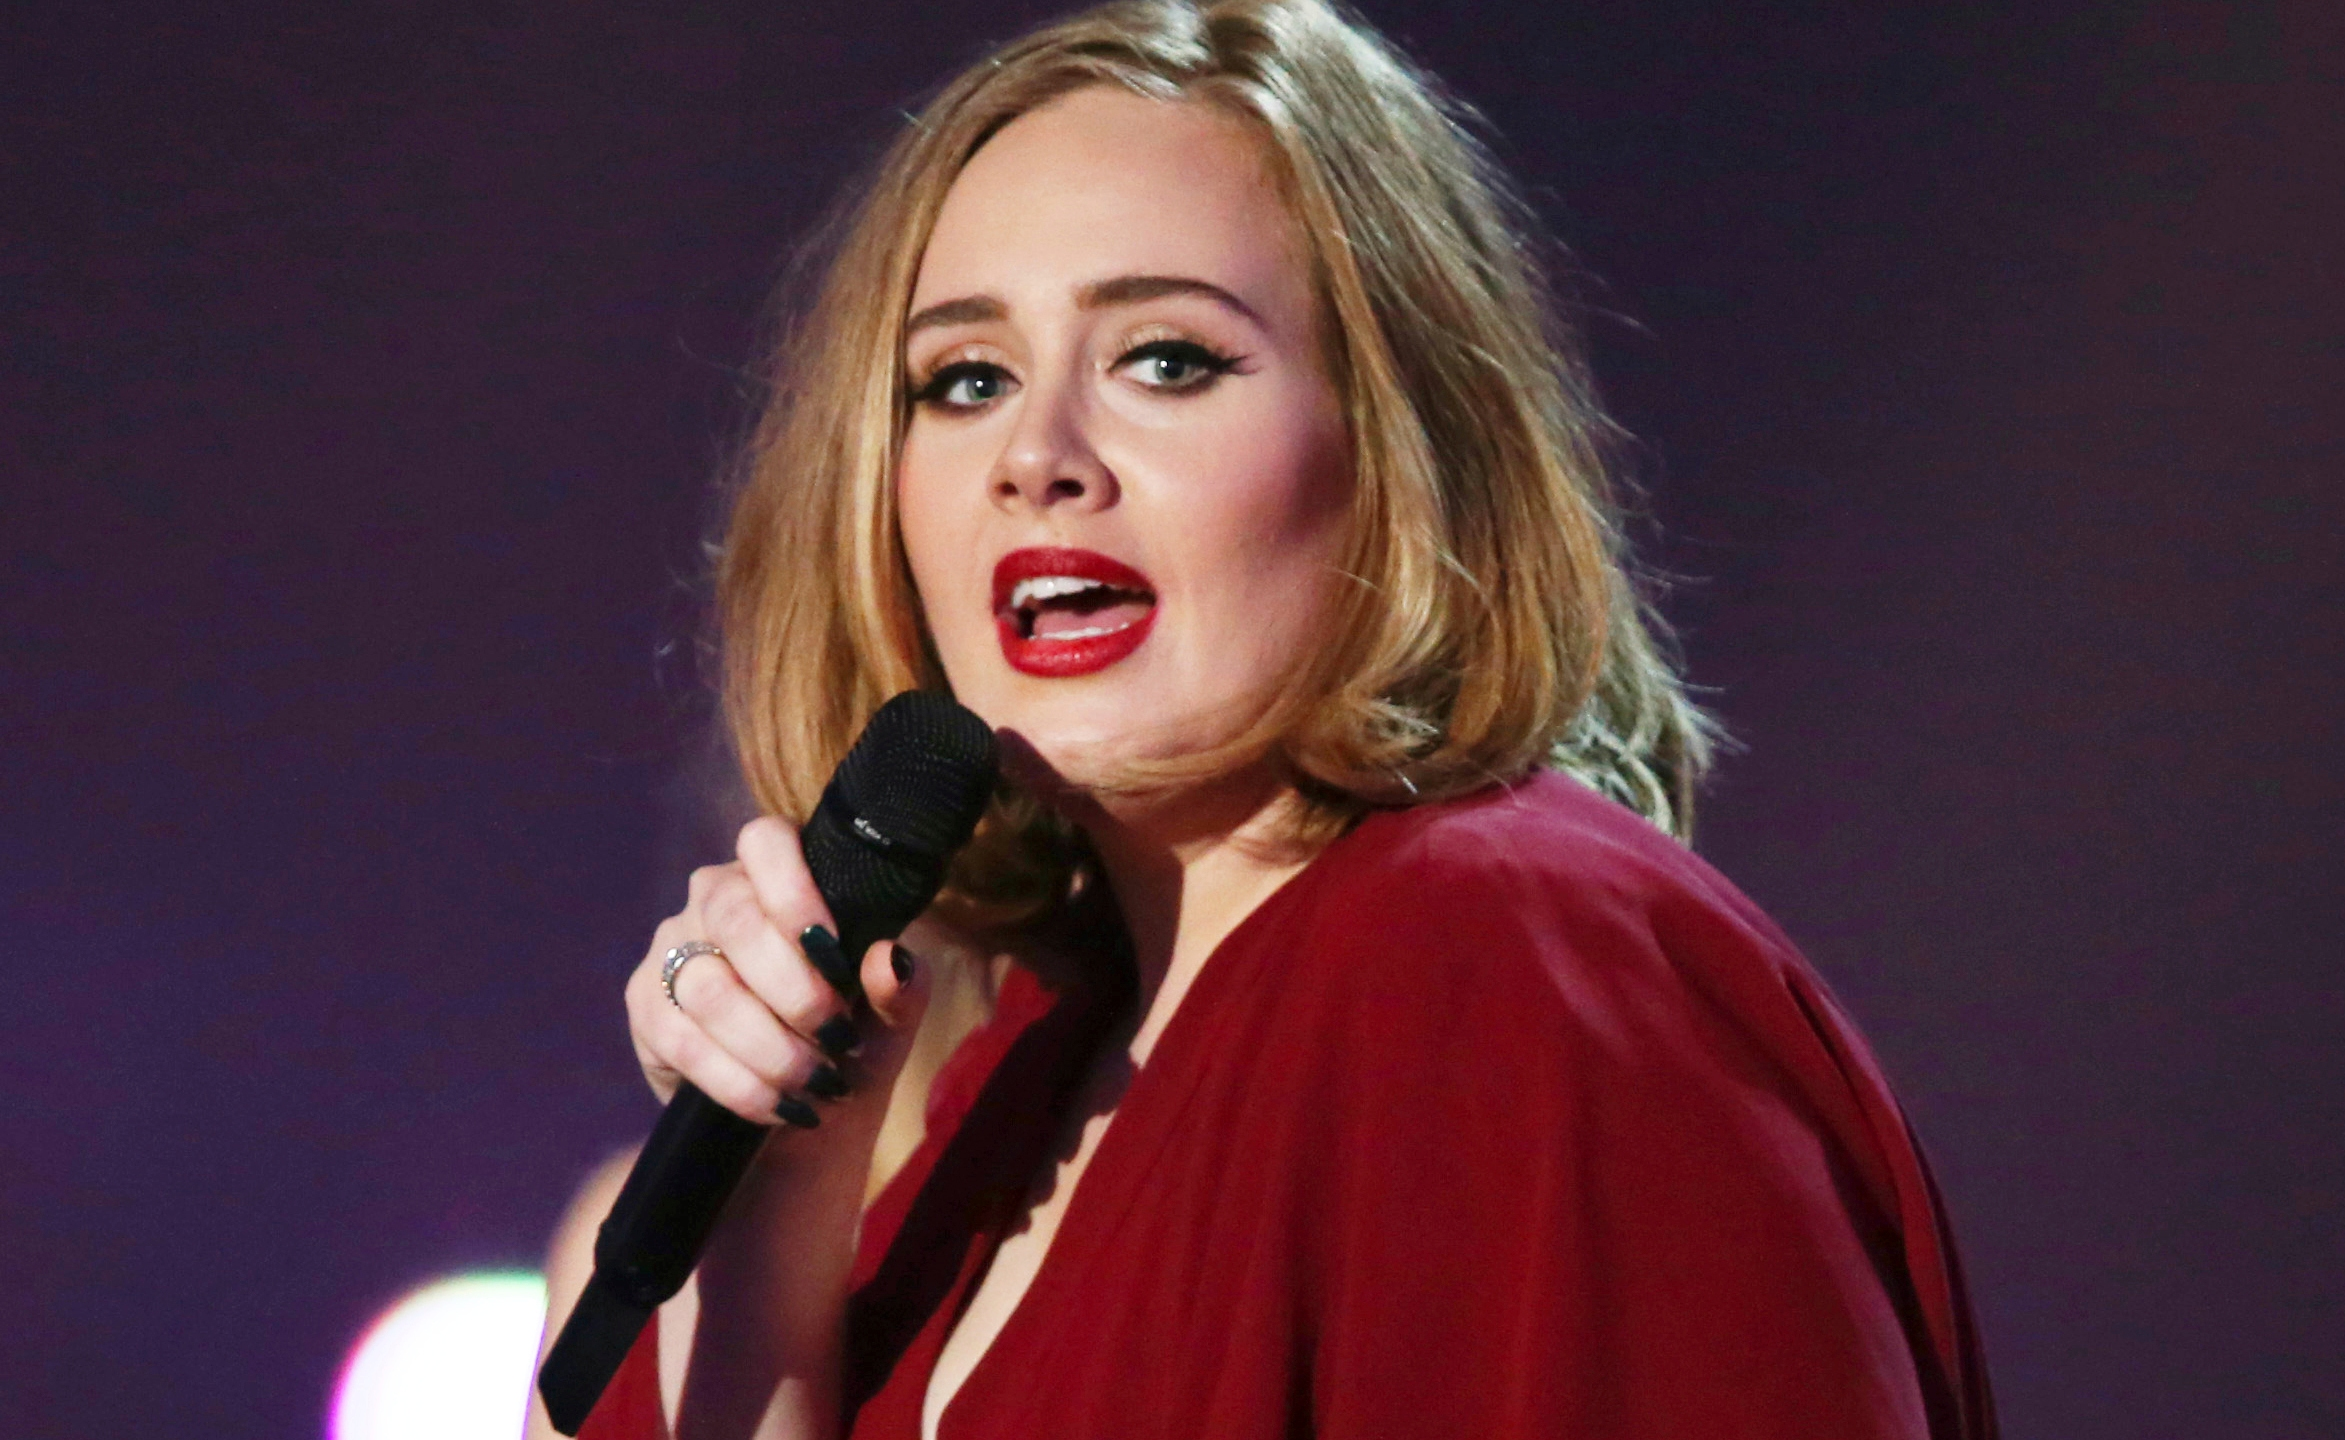 FILE PHOTO Adele Photo by Joel Ryan, Invision, AP Photo_235954